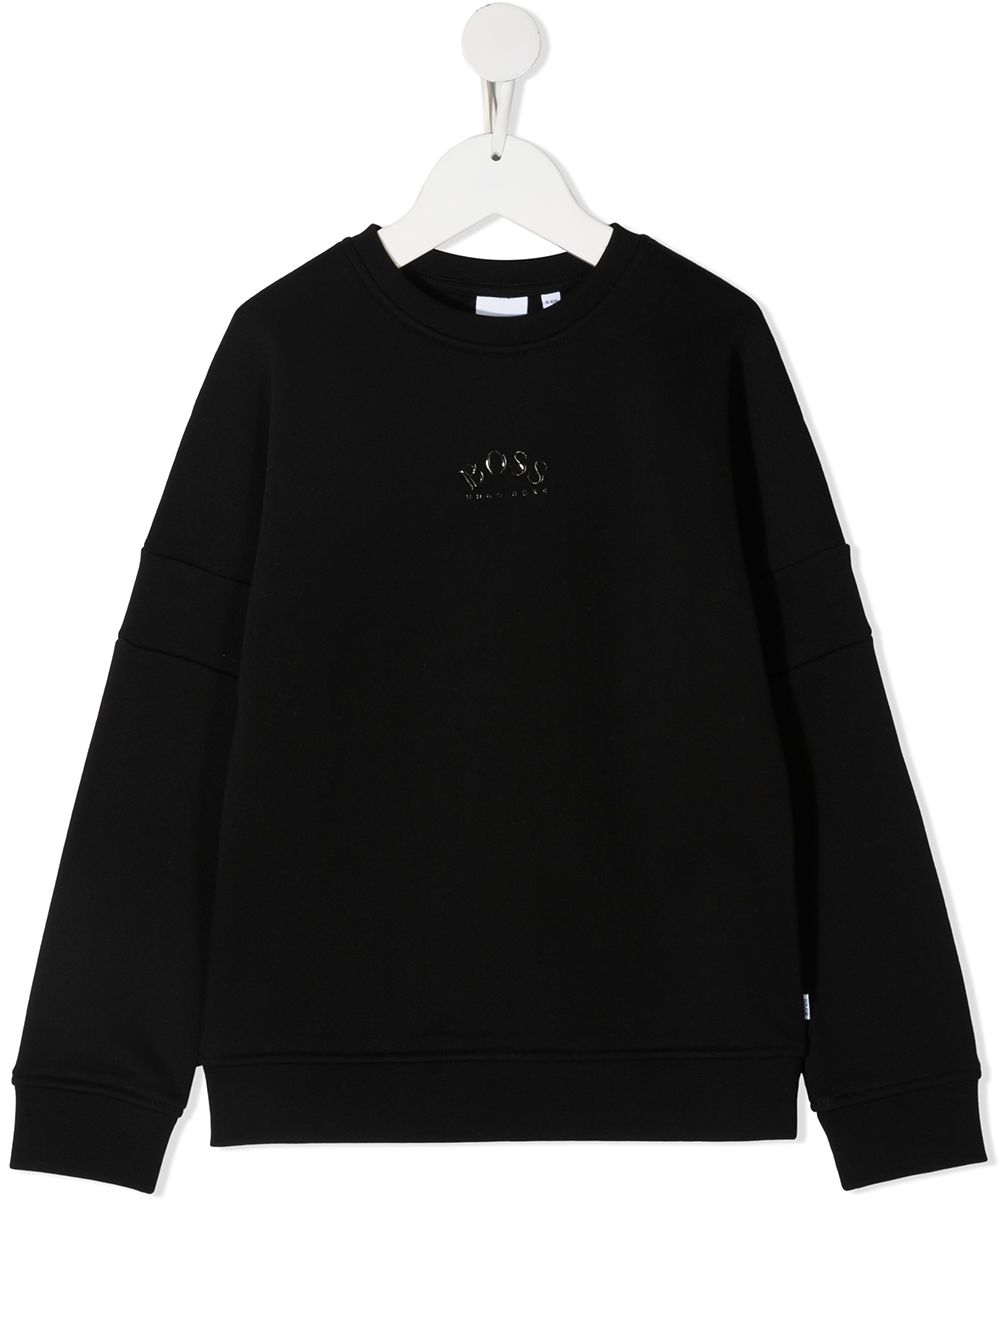 BOSS KIDS Curved Logo Sweatshirt Black - Maison De Fashion